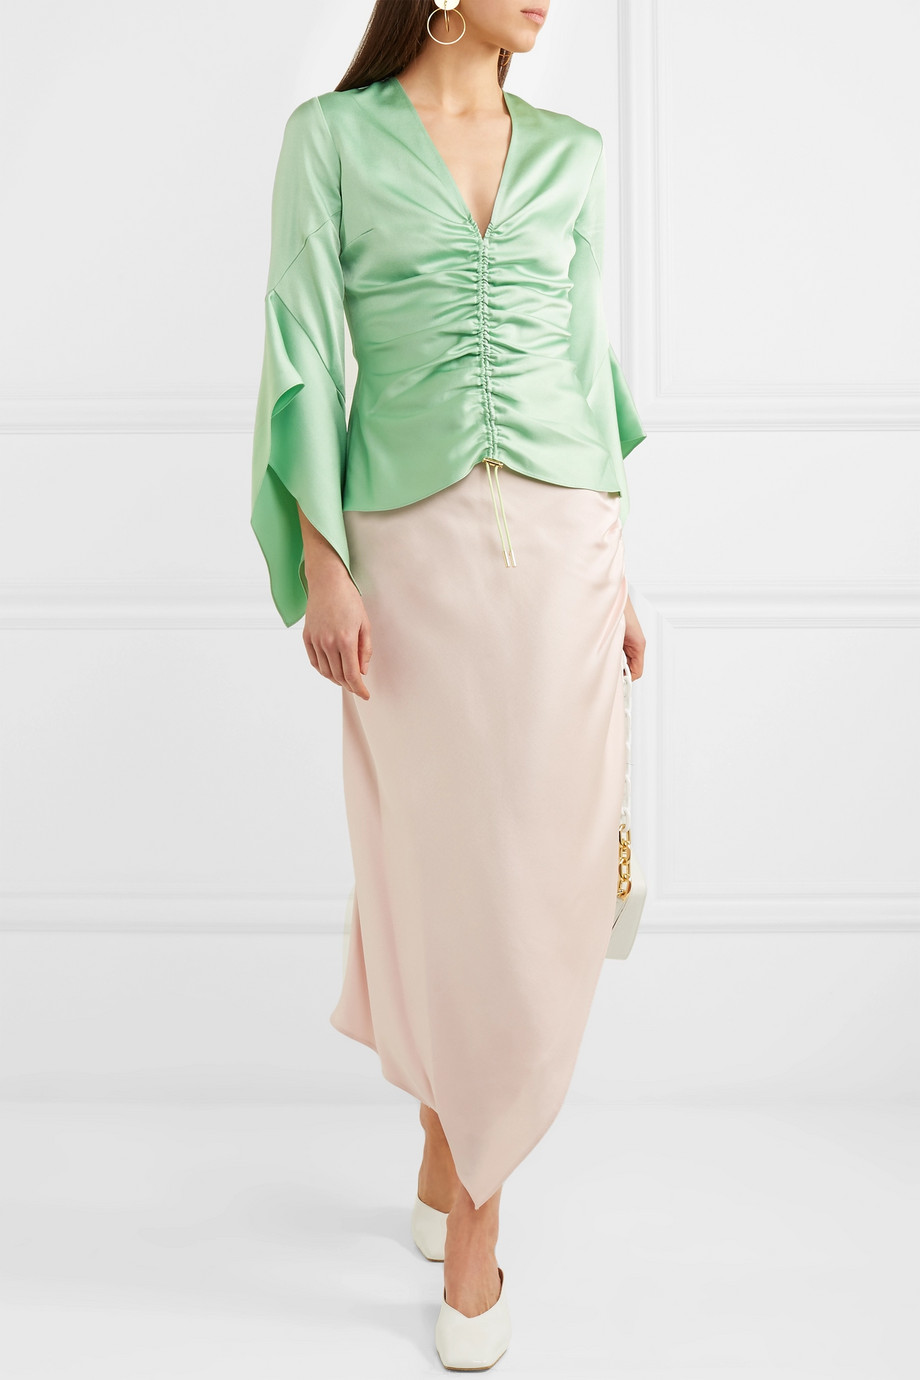 Satin blouse Peter Pilotto buy Satin blouse Peter Pilotto internet shop